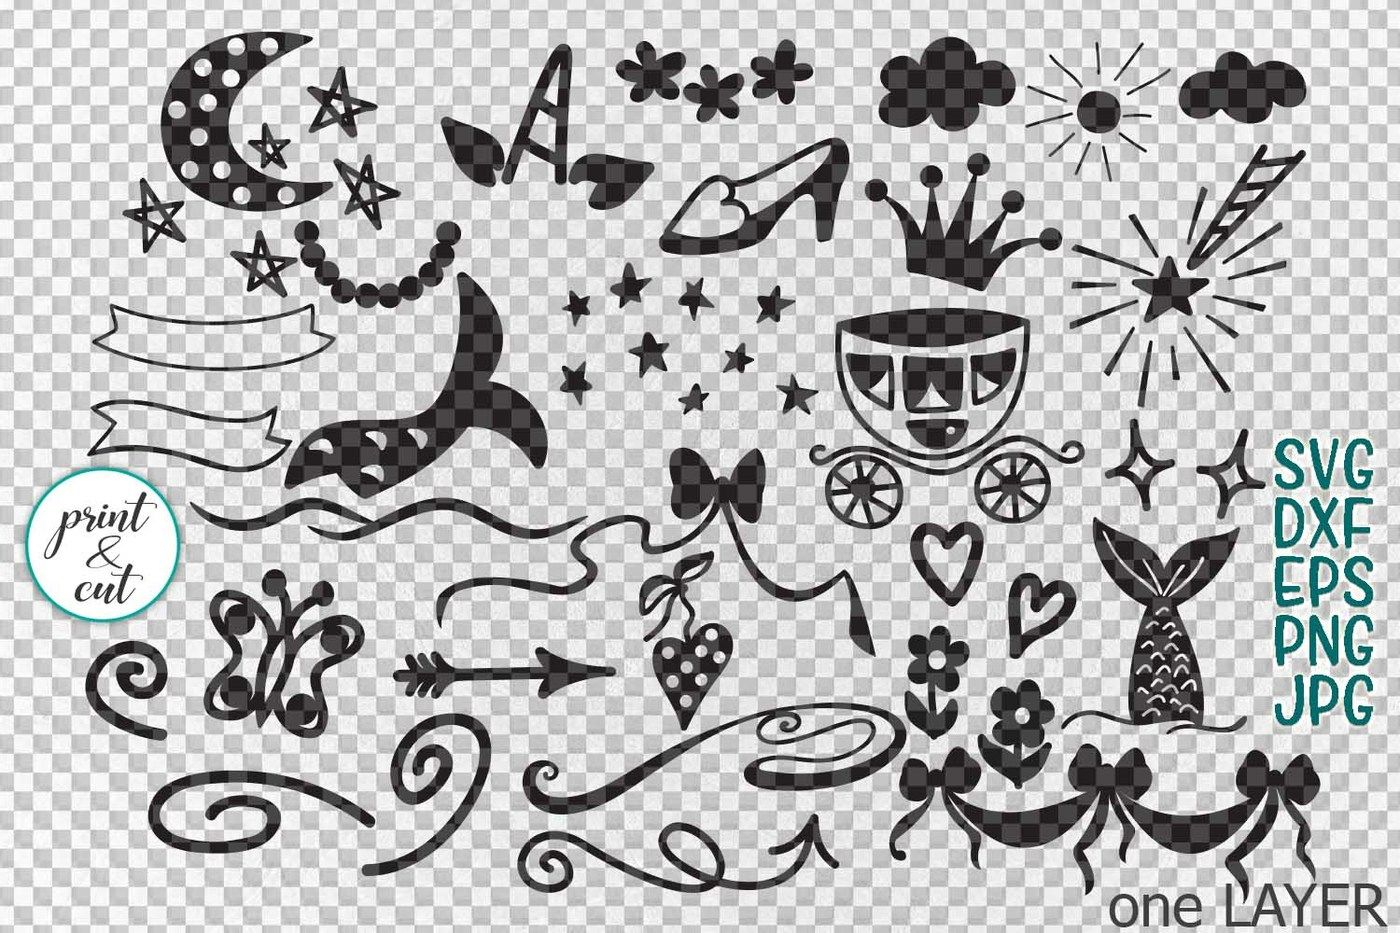 Magical Unicorn Mermaid Princess Doodles Bundle Svg Cutting